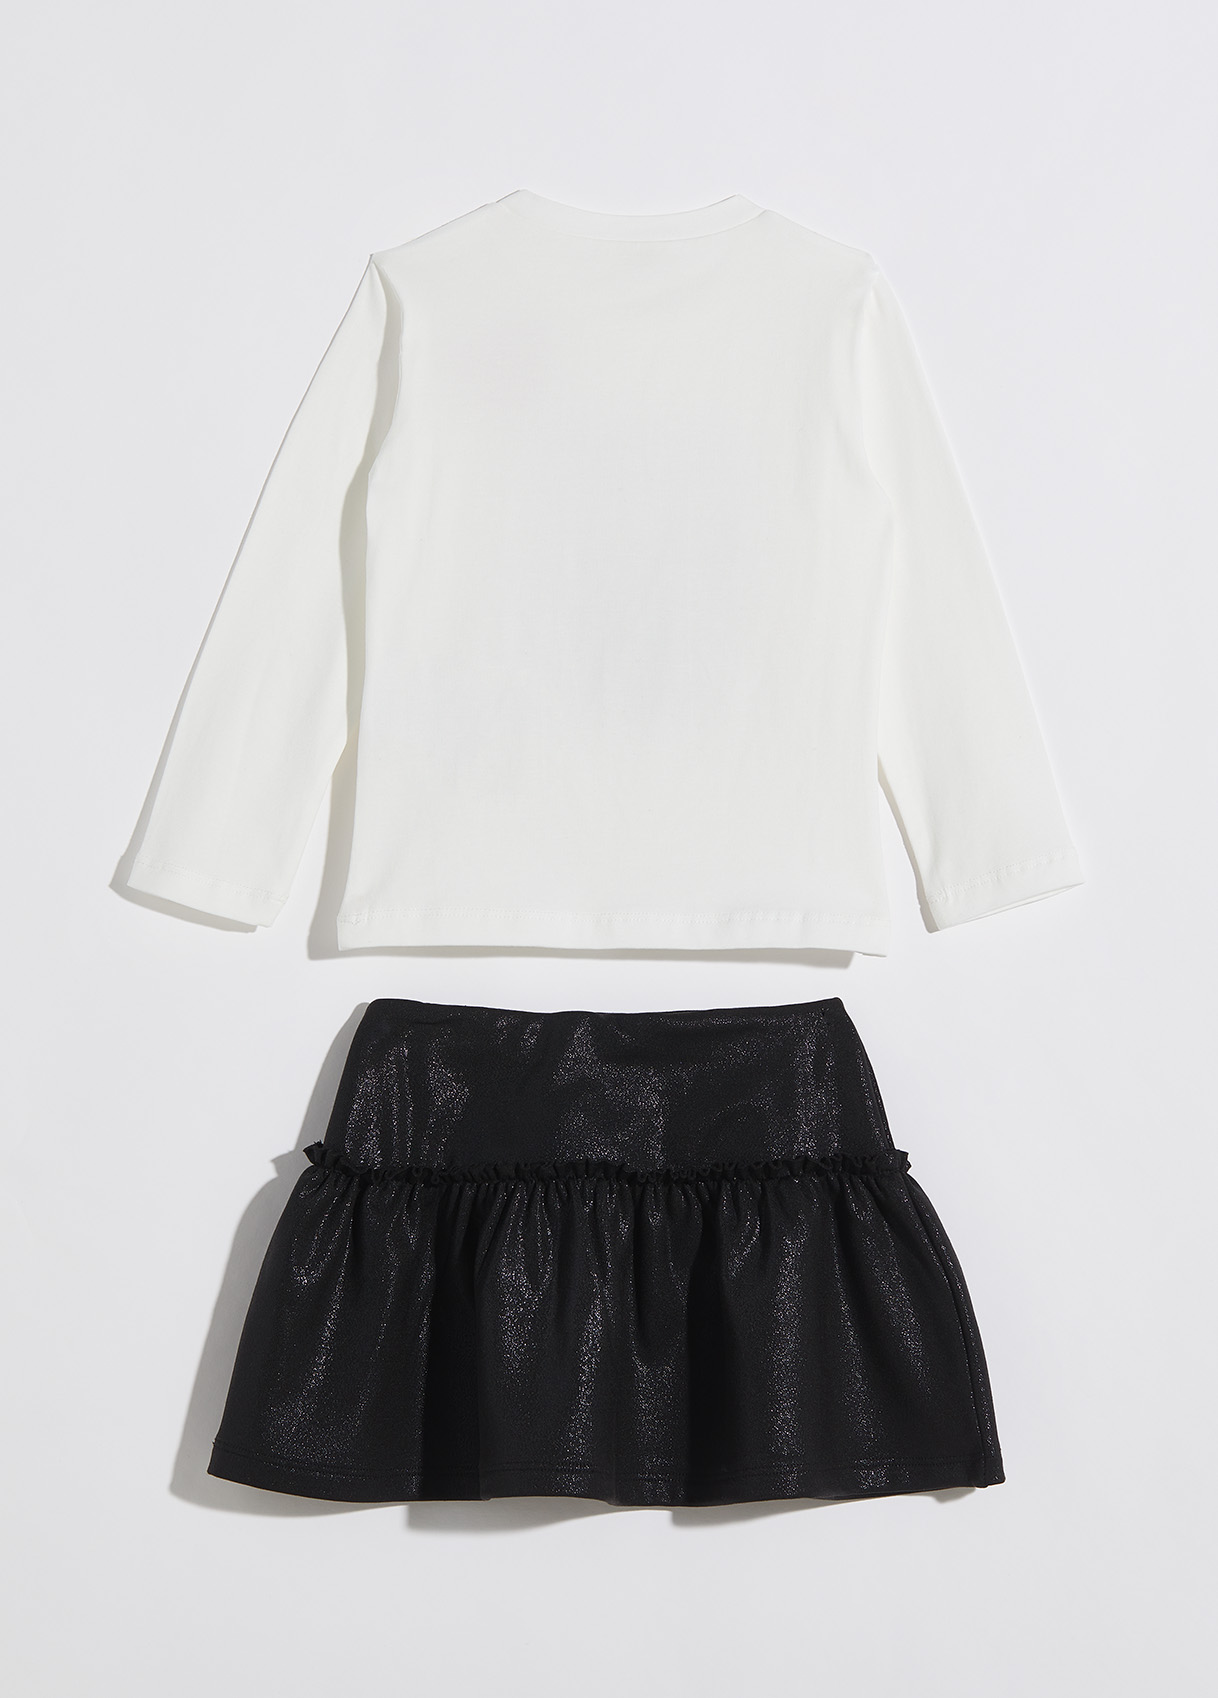 T-shirt and skirt outfit